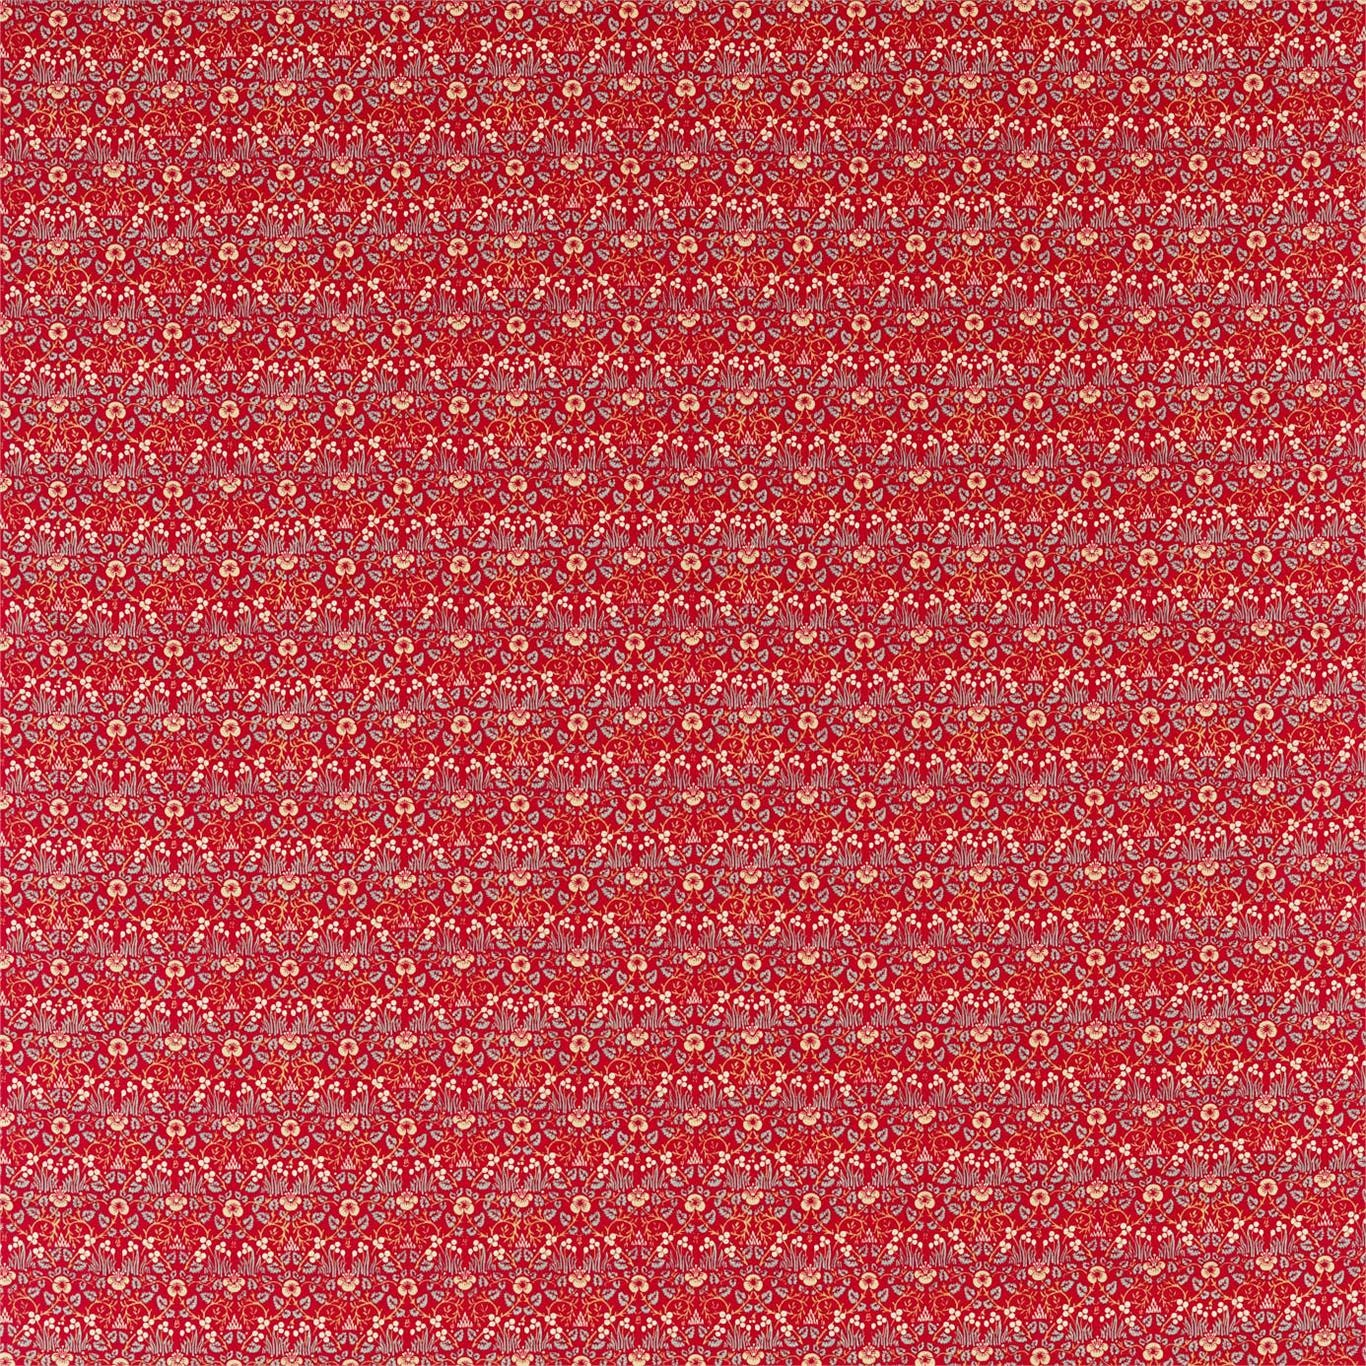 Image of Morris & Co Eye Bright Red Fabric 226599